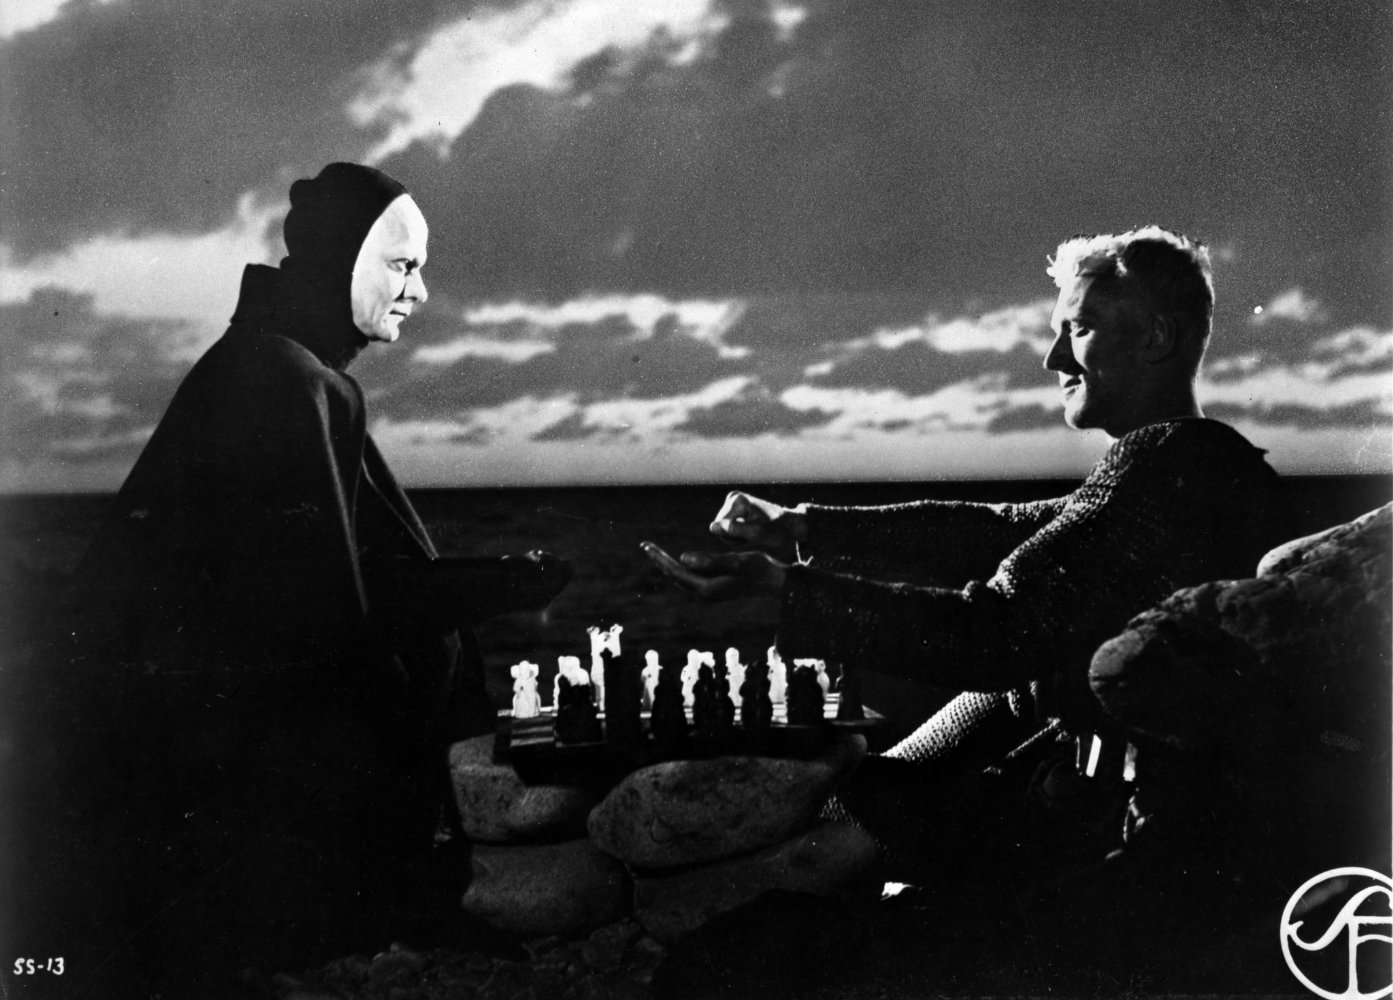 seventh seal1 birdunyafilm